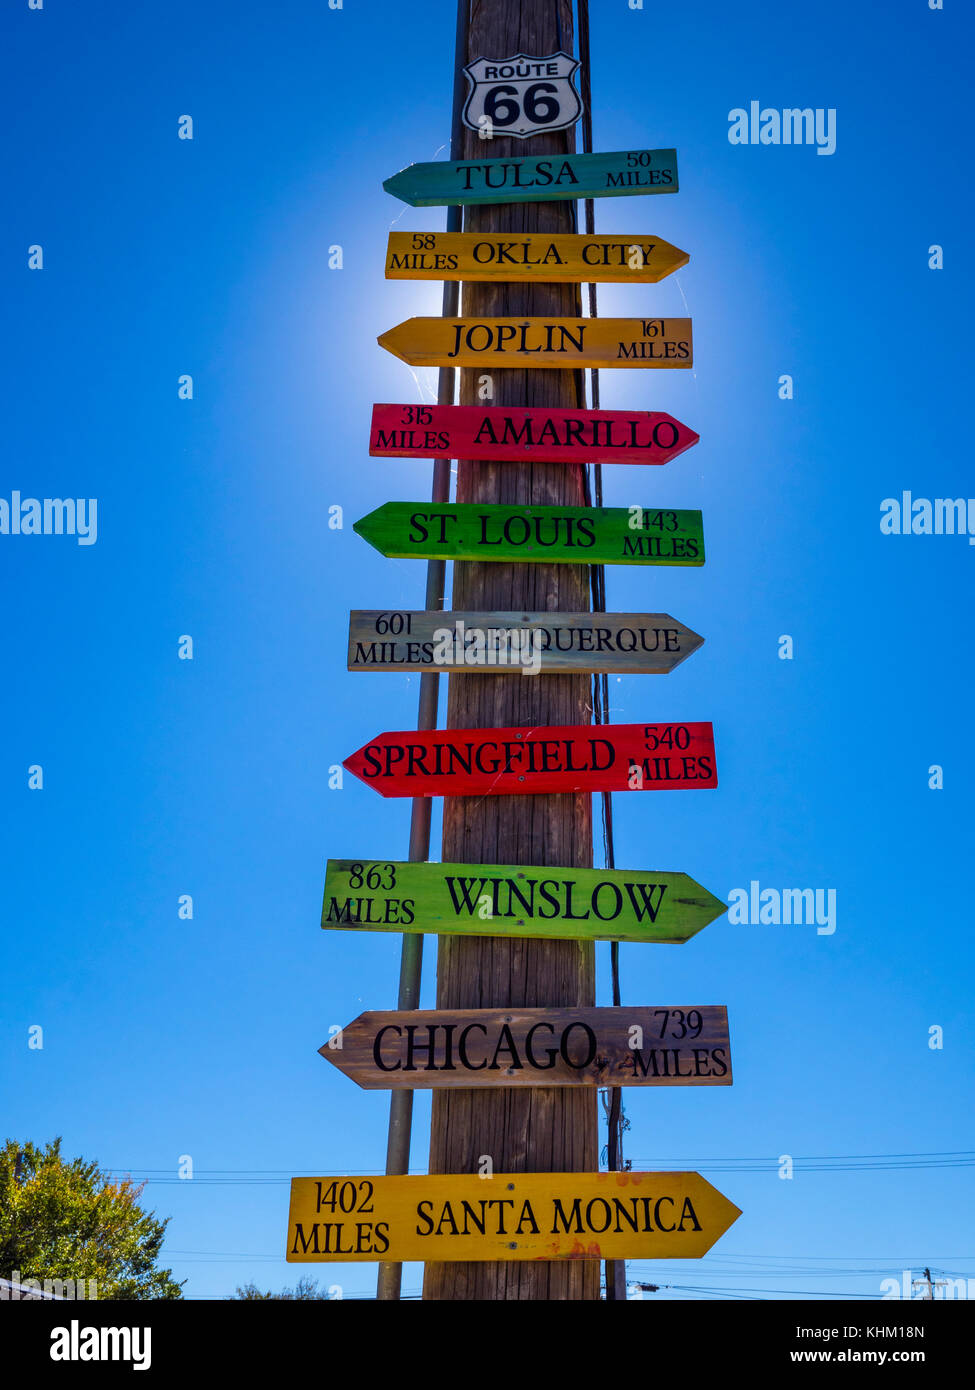 Direction signs to famous cities at Route 66 - STROUD / OKLAHOMA - OCTOBER 16, 2017 - Stock Image